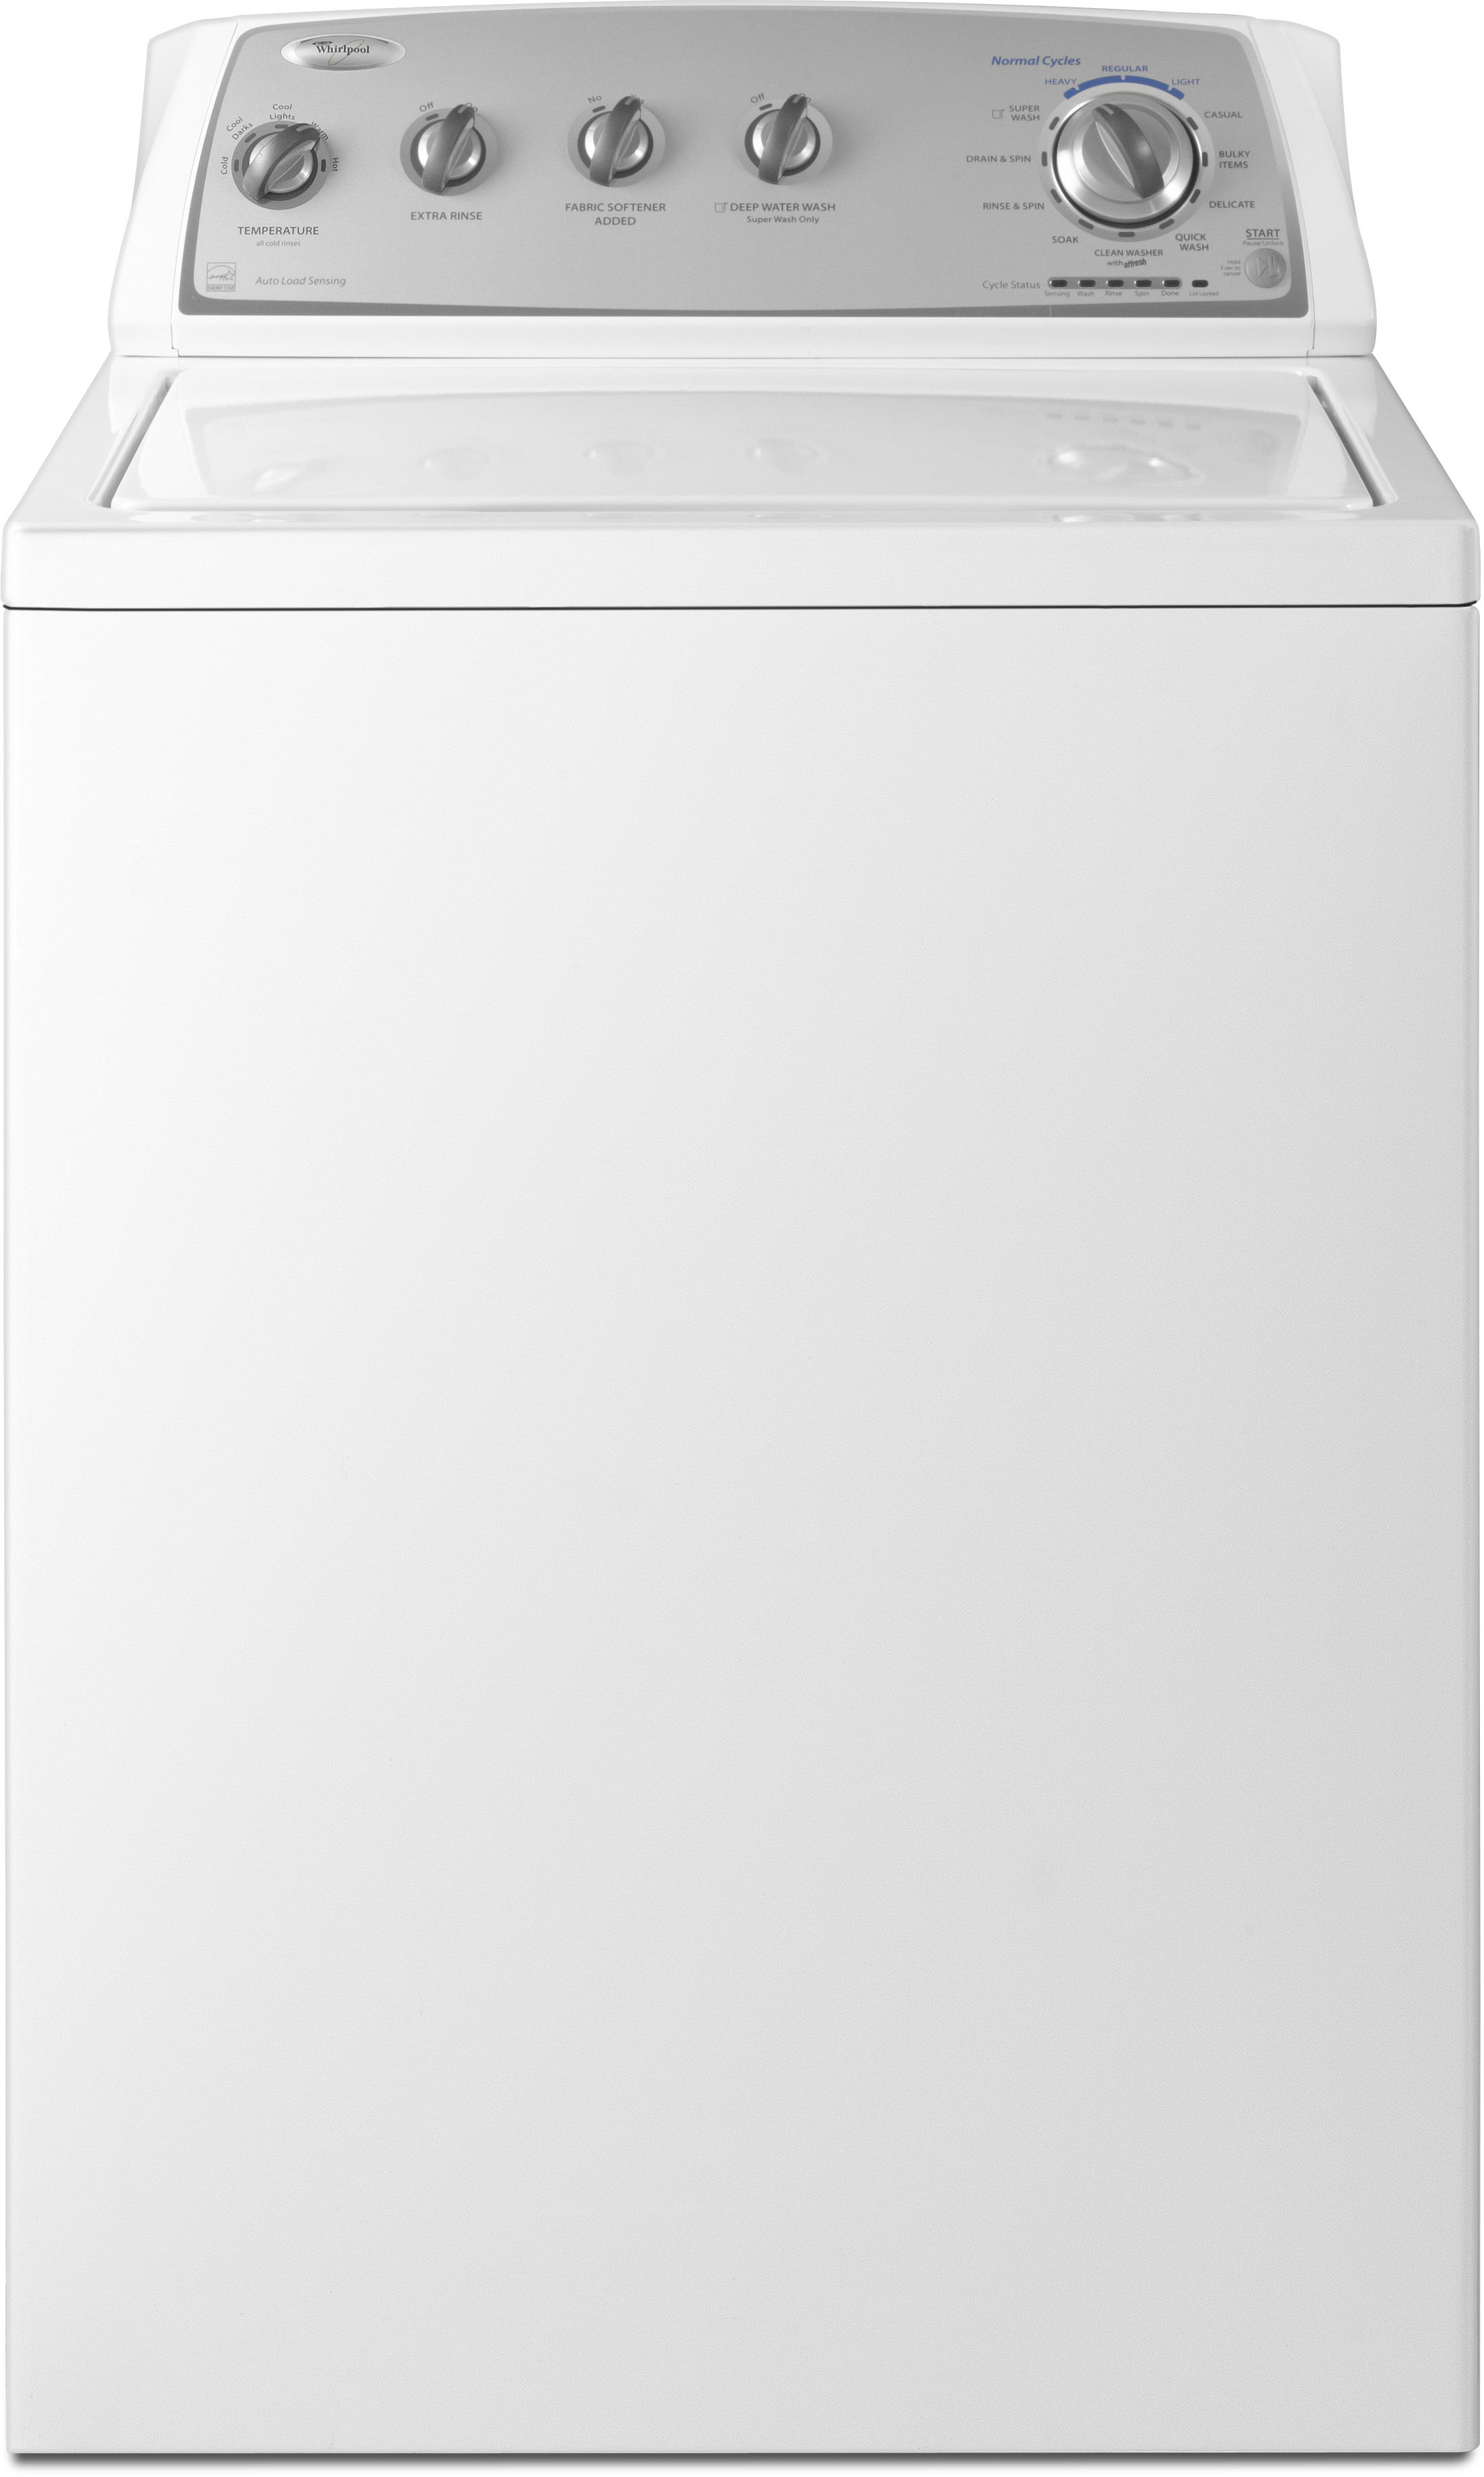 Whirlpool Wtw4880aw 27 Inch Top Load Washer With 34 Cu Ft Wiring Diagram Wtw5200vq2 Capacity 12 Wash Cycles 5 Water Temperatures 700 Rpm Spin Speed And Soak Setting